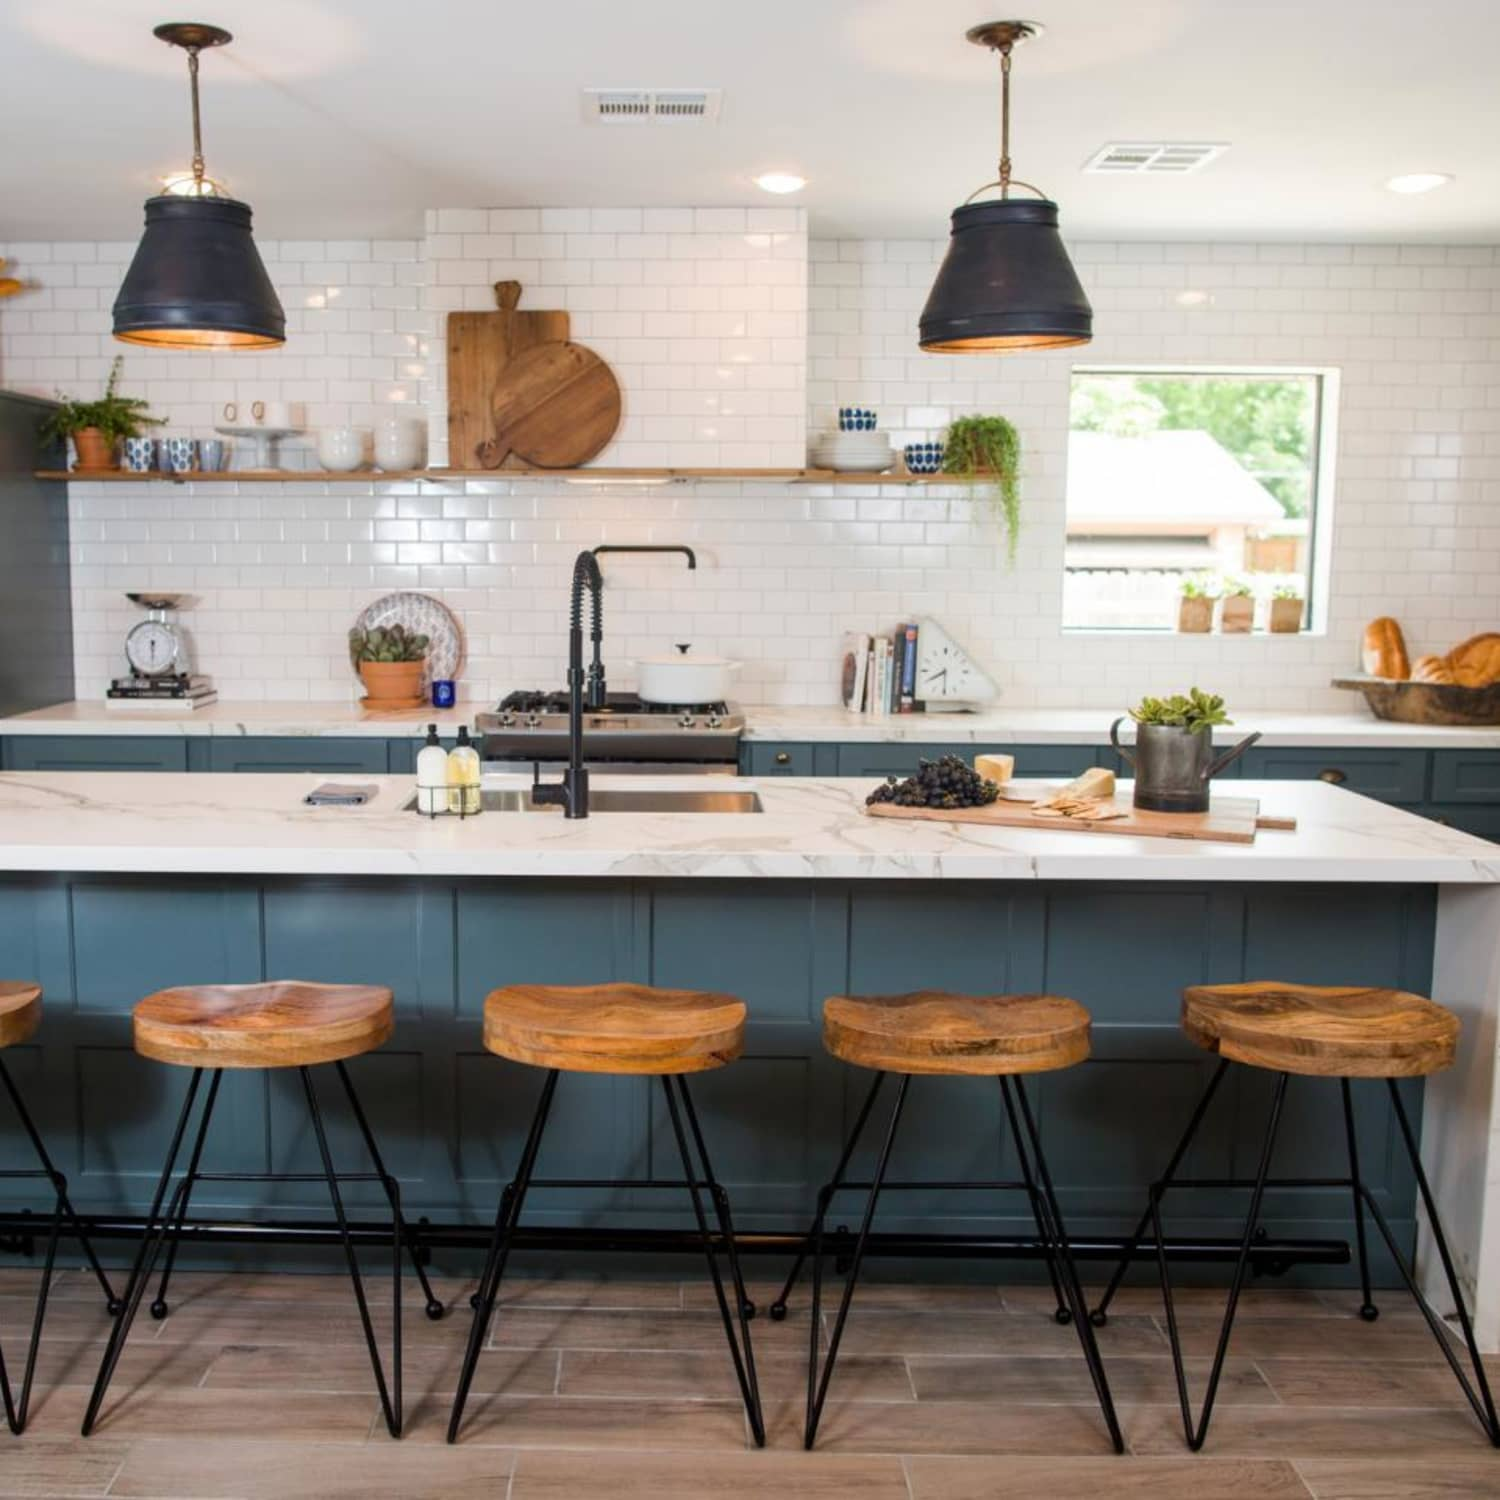 5 Essential Elements In Every Fixer Upper Kitchen Kitchn